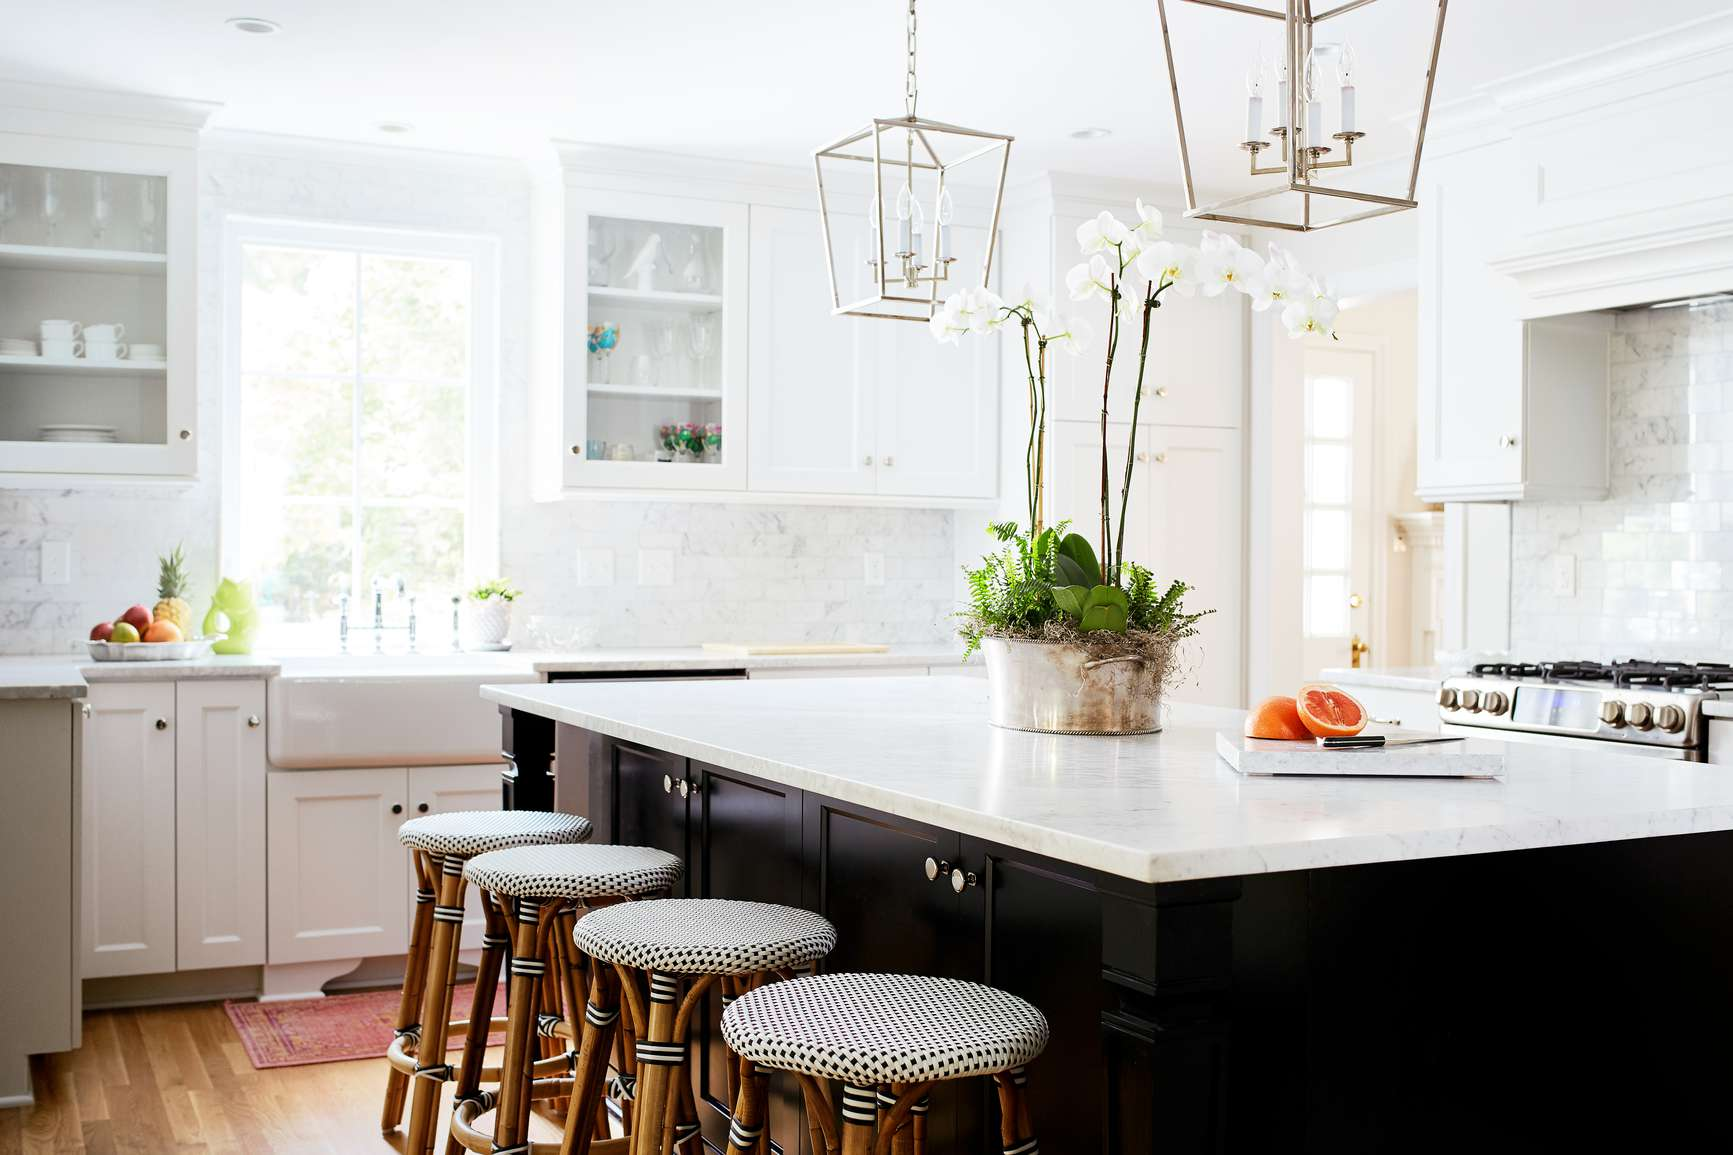 Bright kitchen with orchid